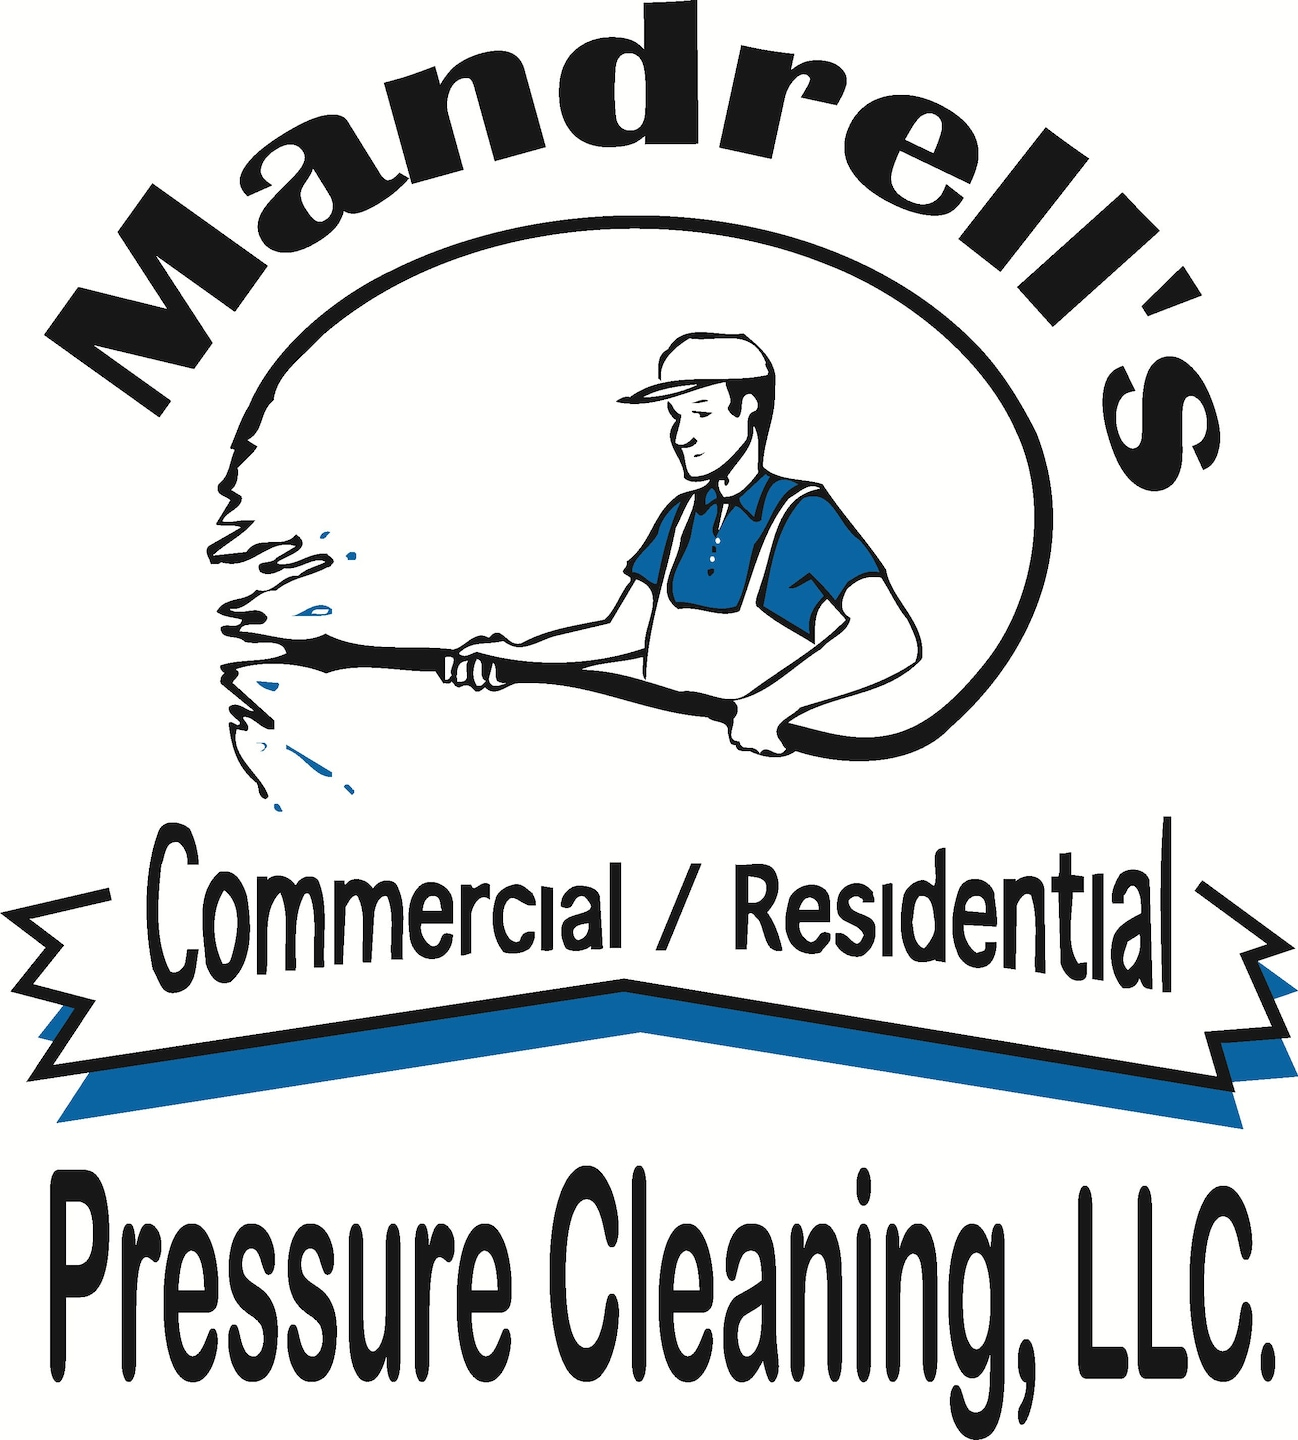 Mandrell's Pressure Cleaning, LLC